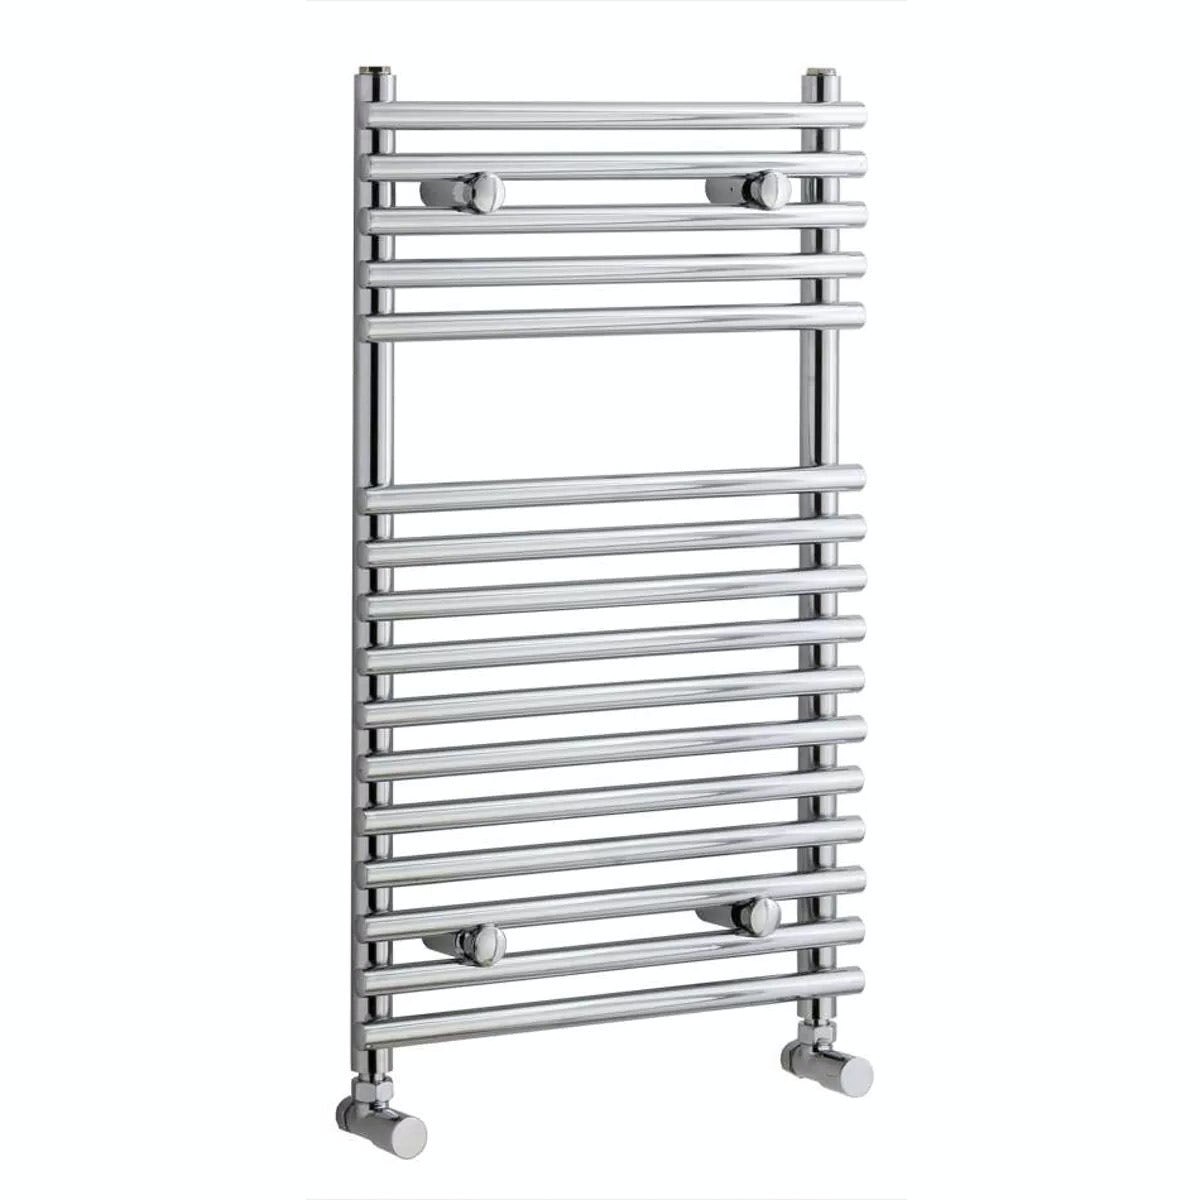 Orchard Derwent heated towel rail 750 x 450 offer pack